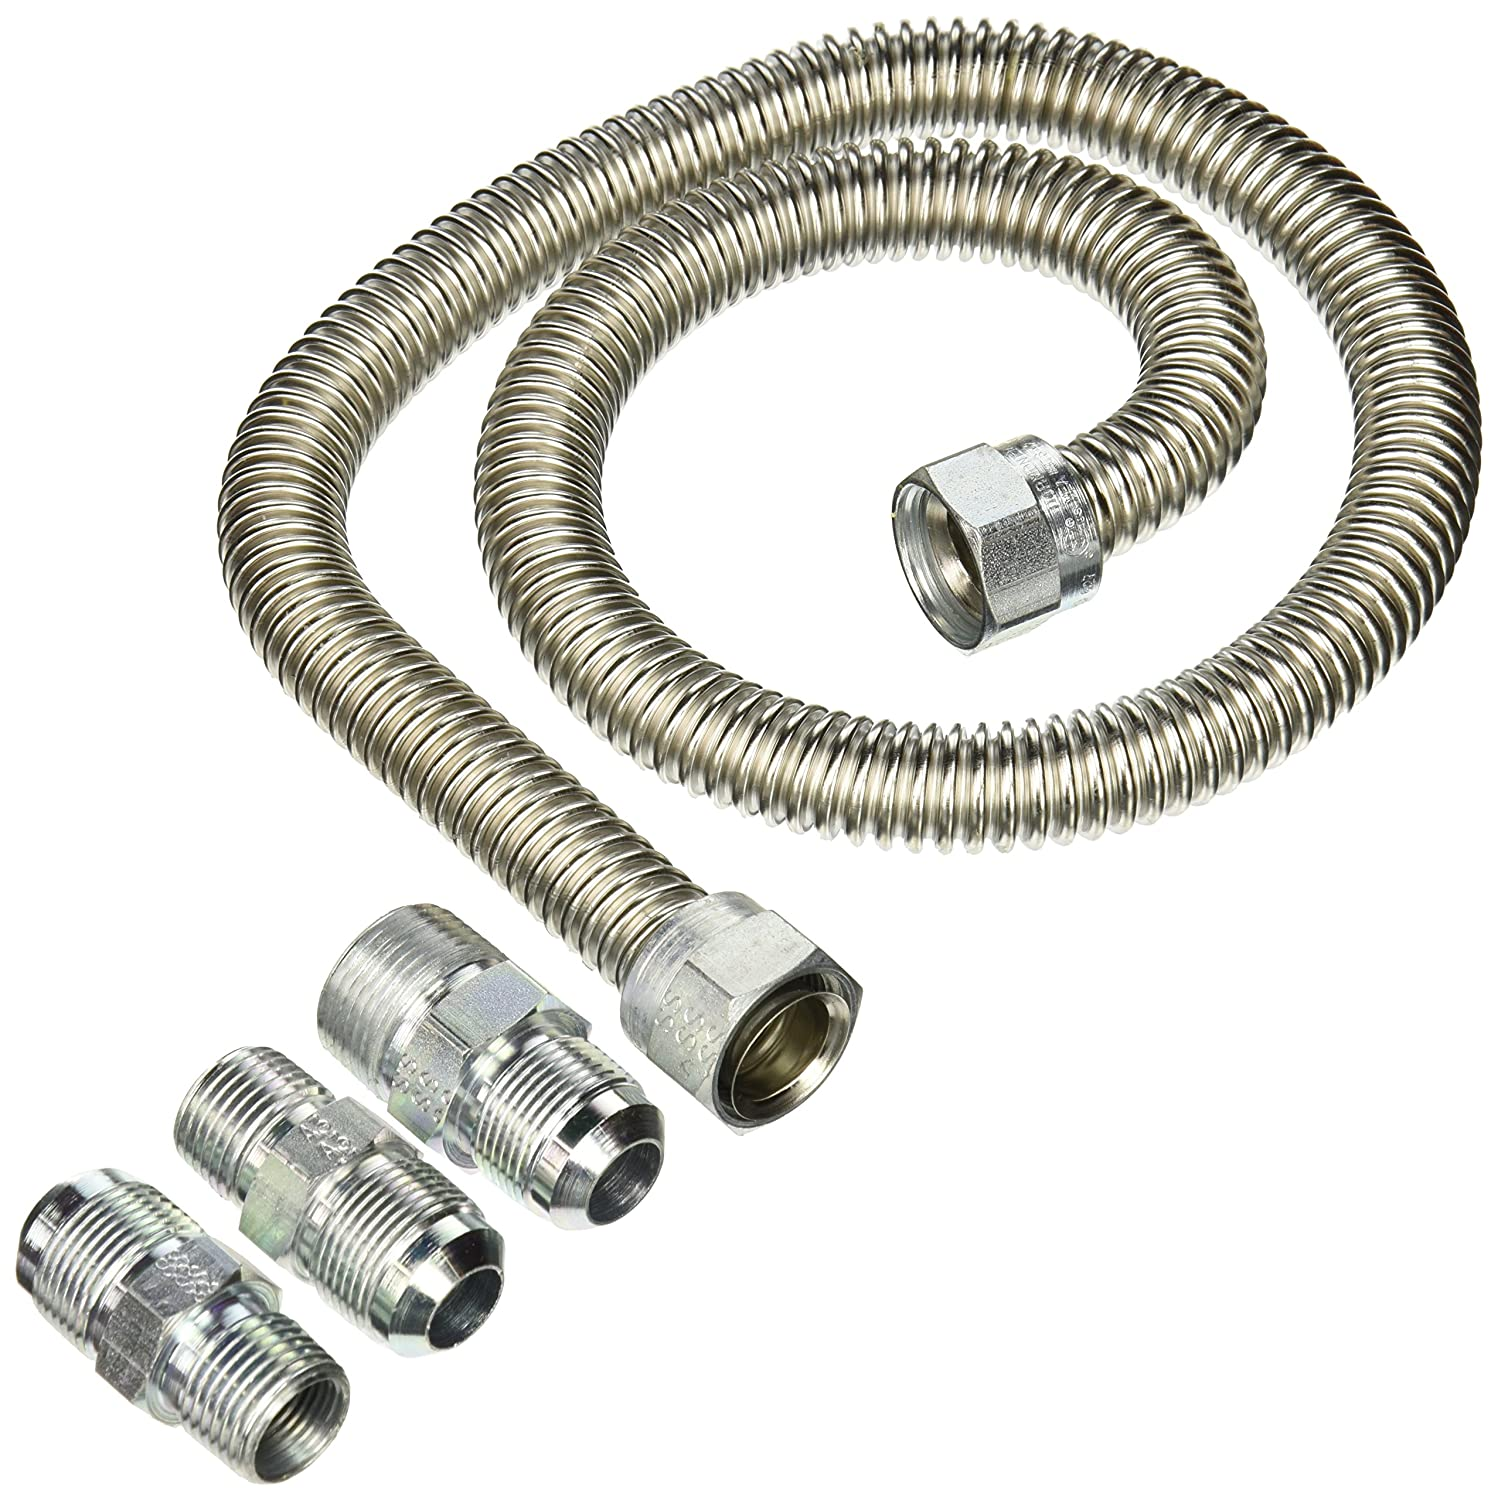 Ge GIDS-1031320 36' Range Gas Kit